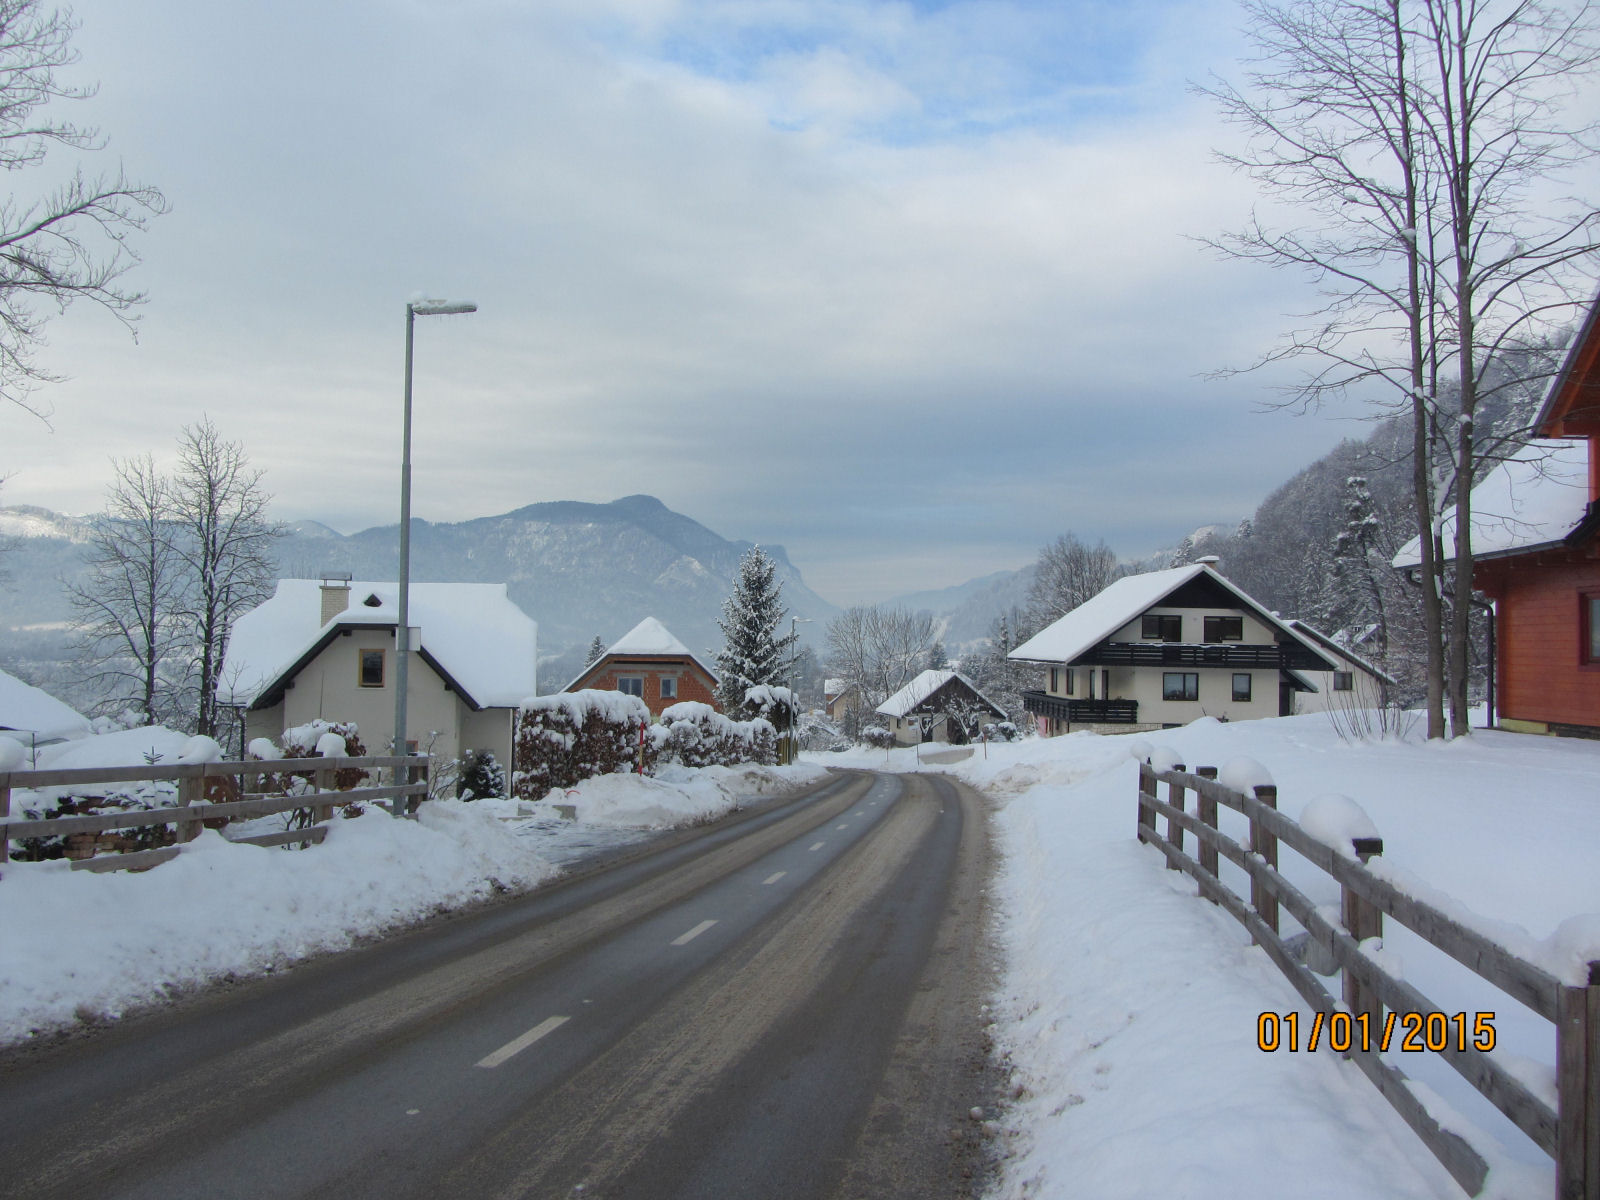 Gorenjska winter 2015